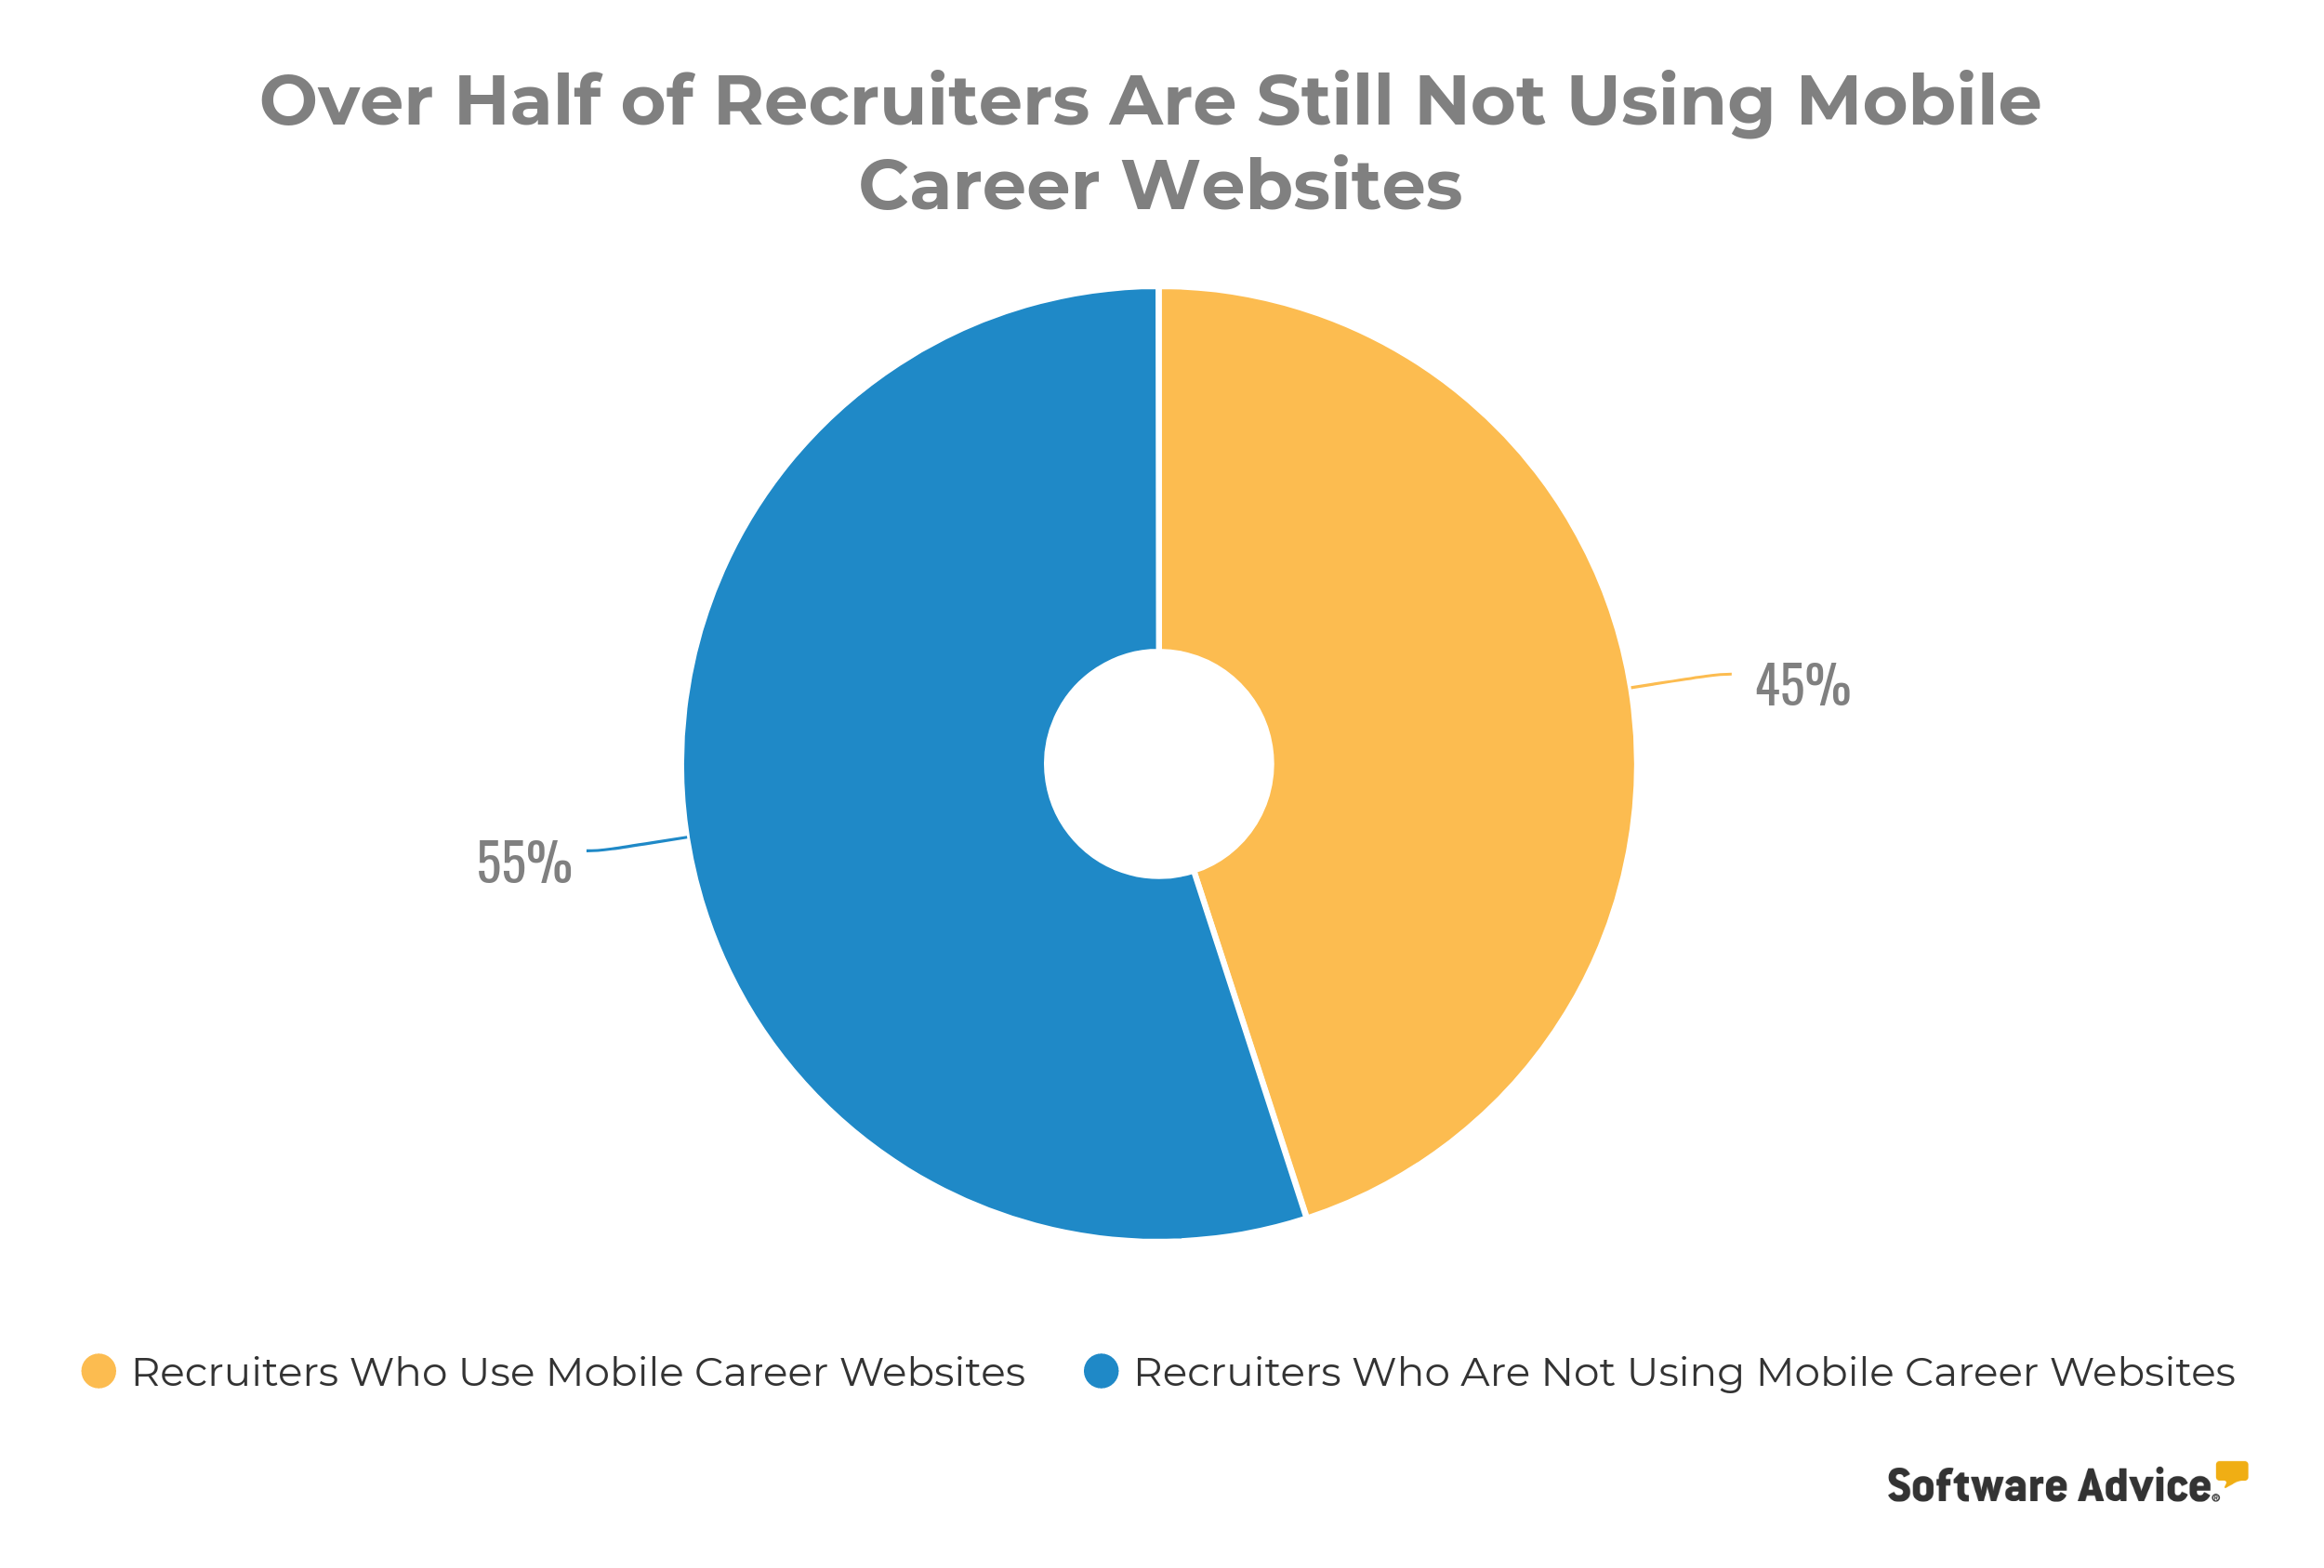 Over half of recruiters are still not using mobile career websites